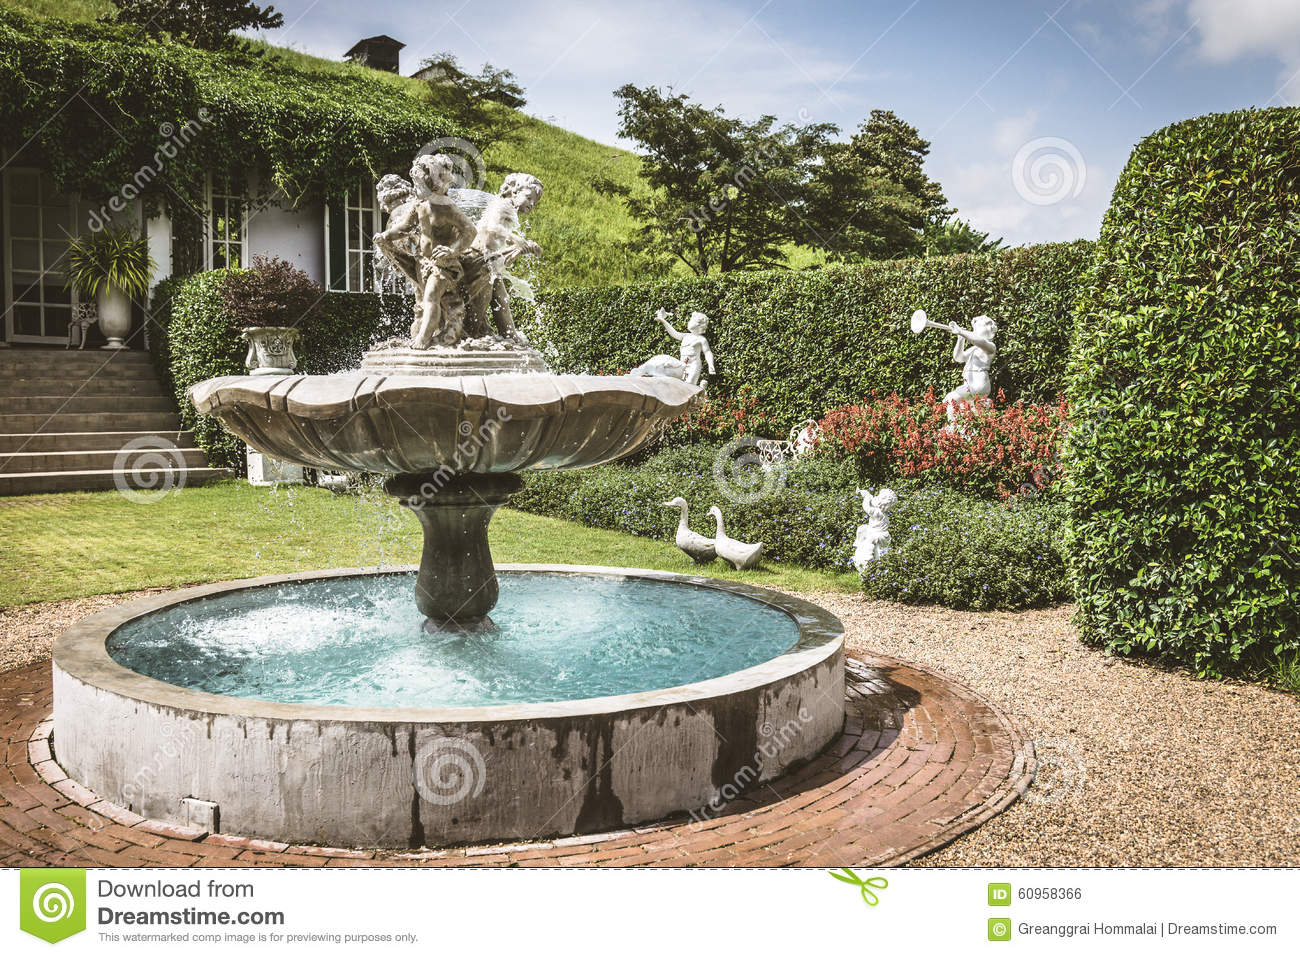 Young Sculpture And Fountain In The English Style Garden Stock Photo    Image Of Outdoor, Blossom: 60958366